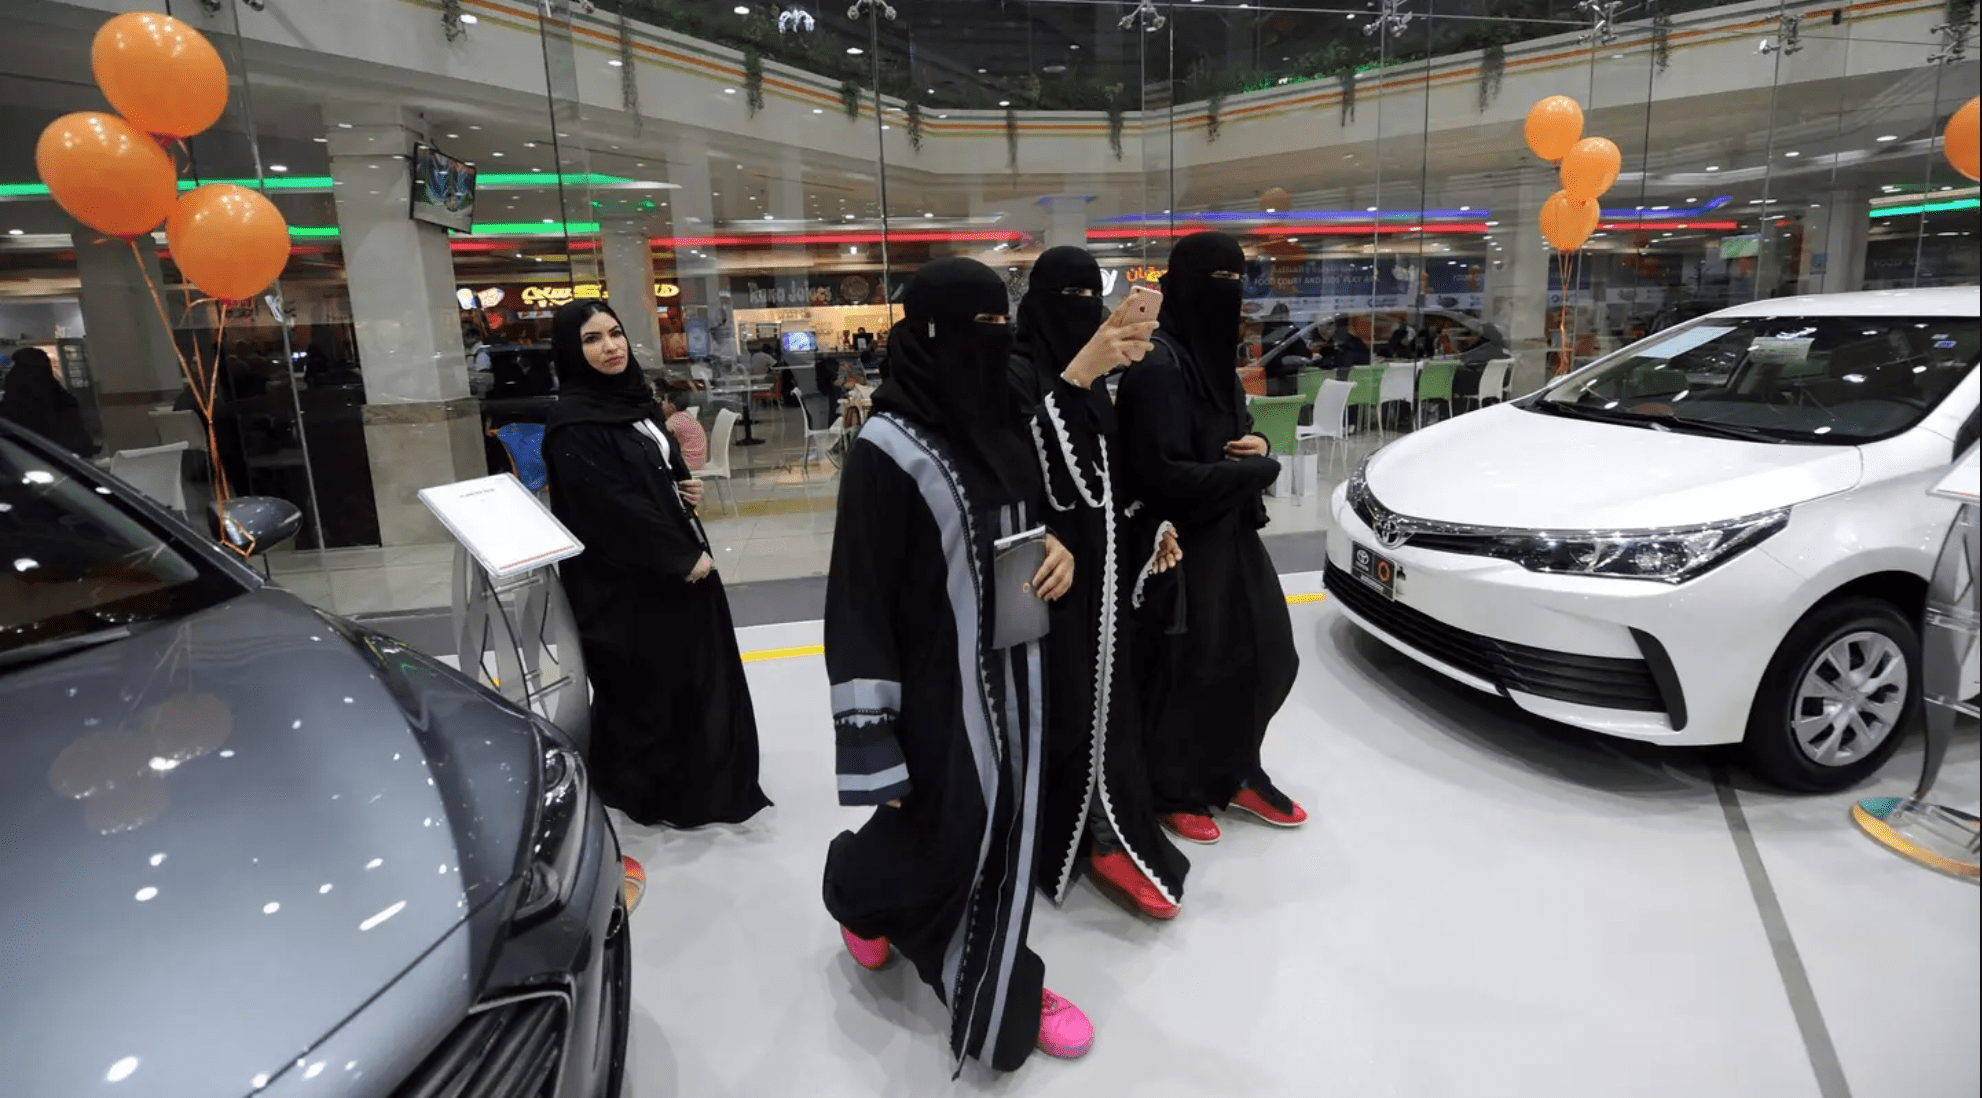 Image After a royal decree lifting the ban on women drivers, the first all-female auto show was held at Le Mall in Jeddah. (AP)